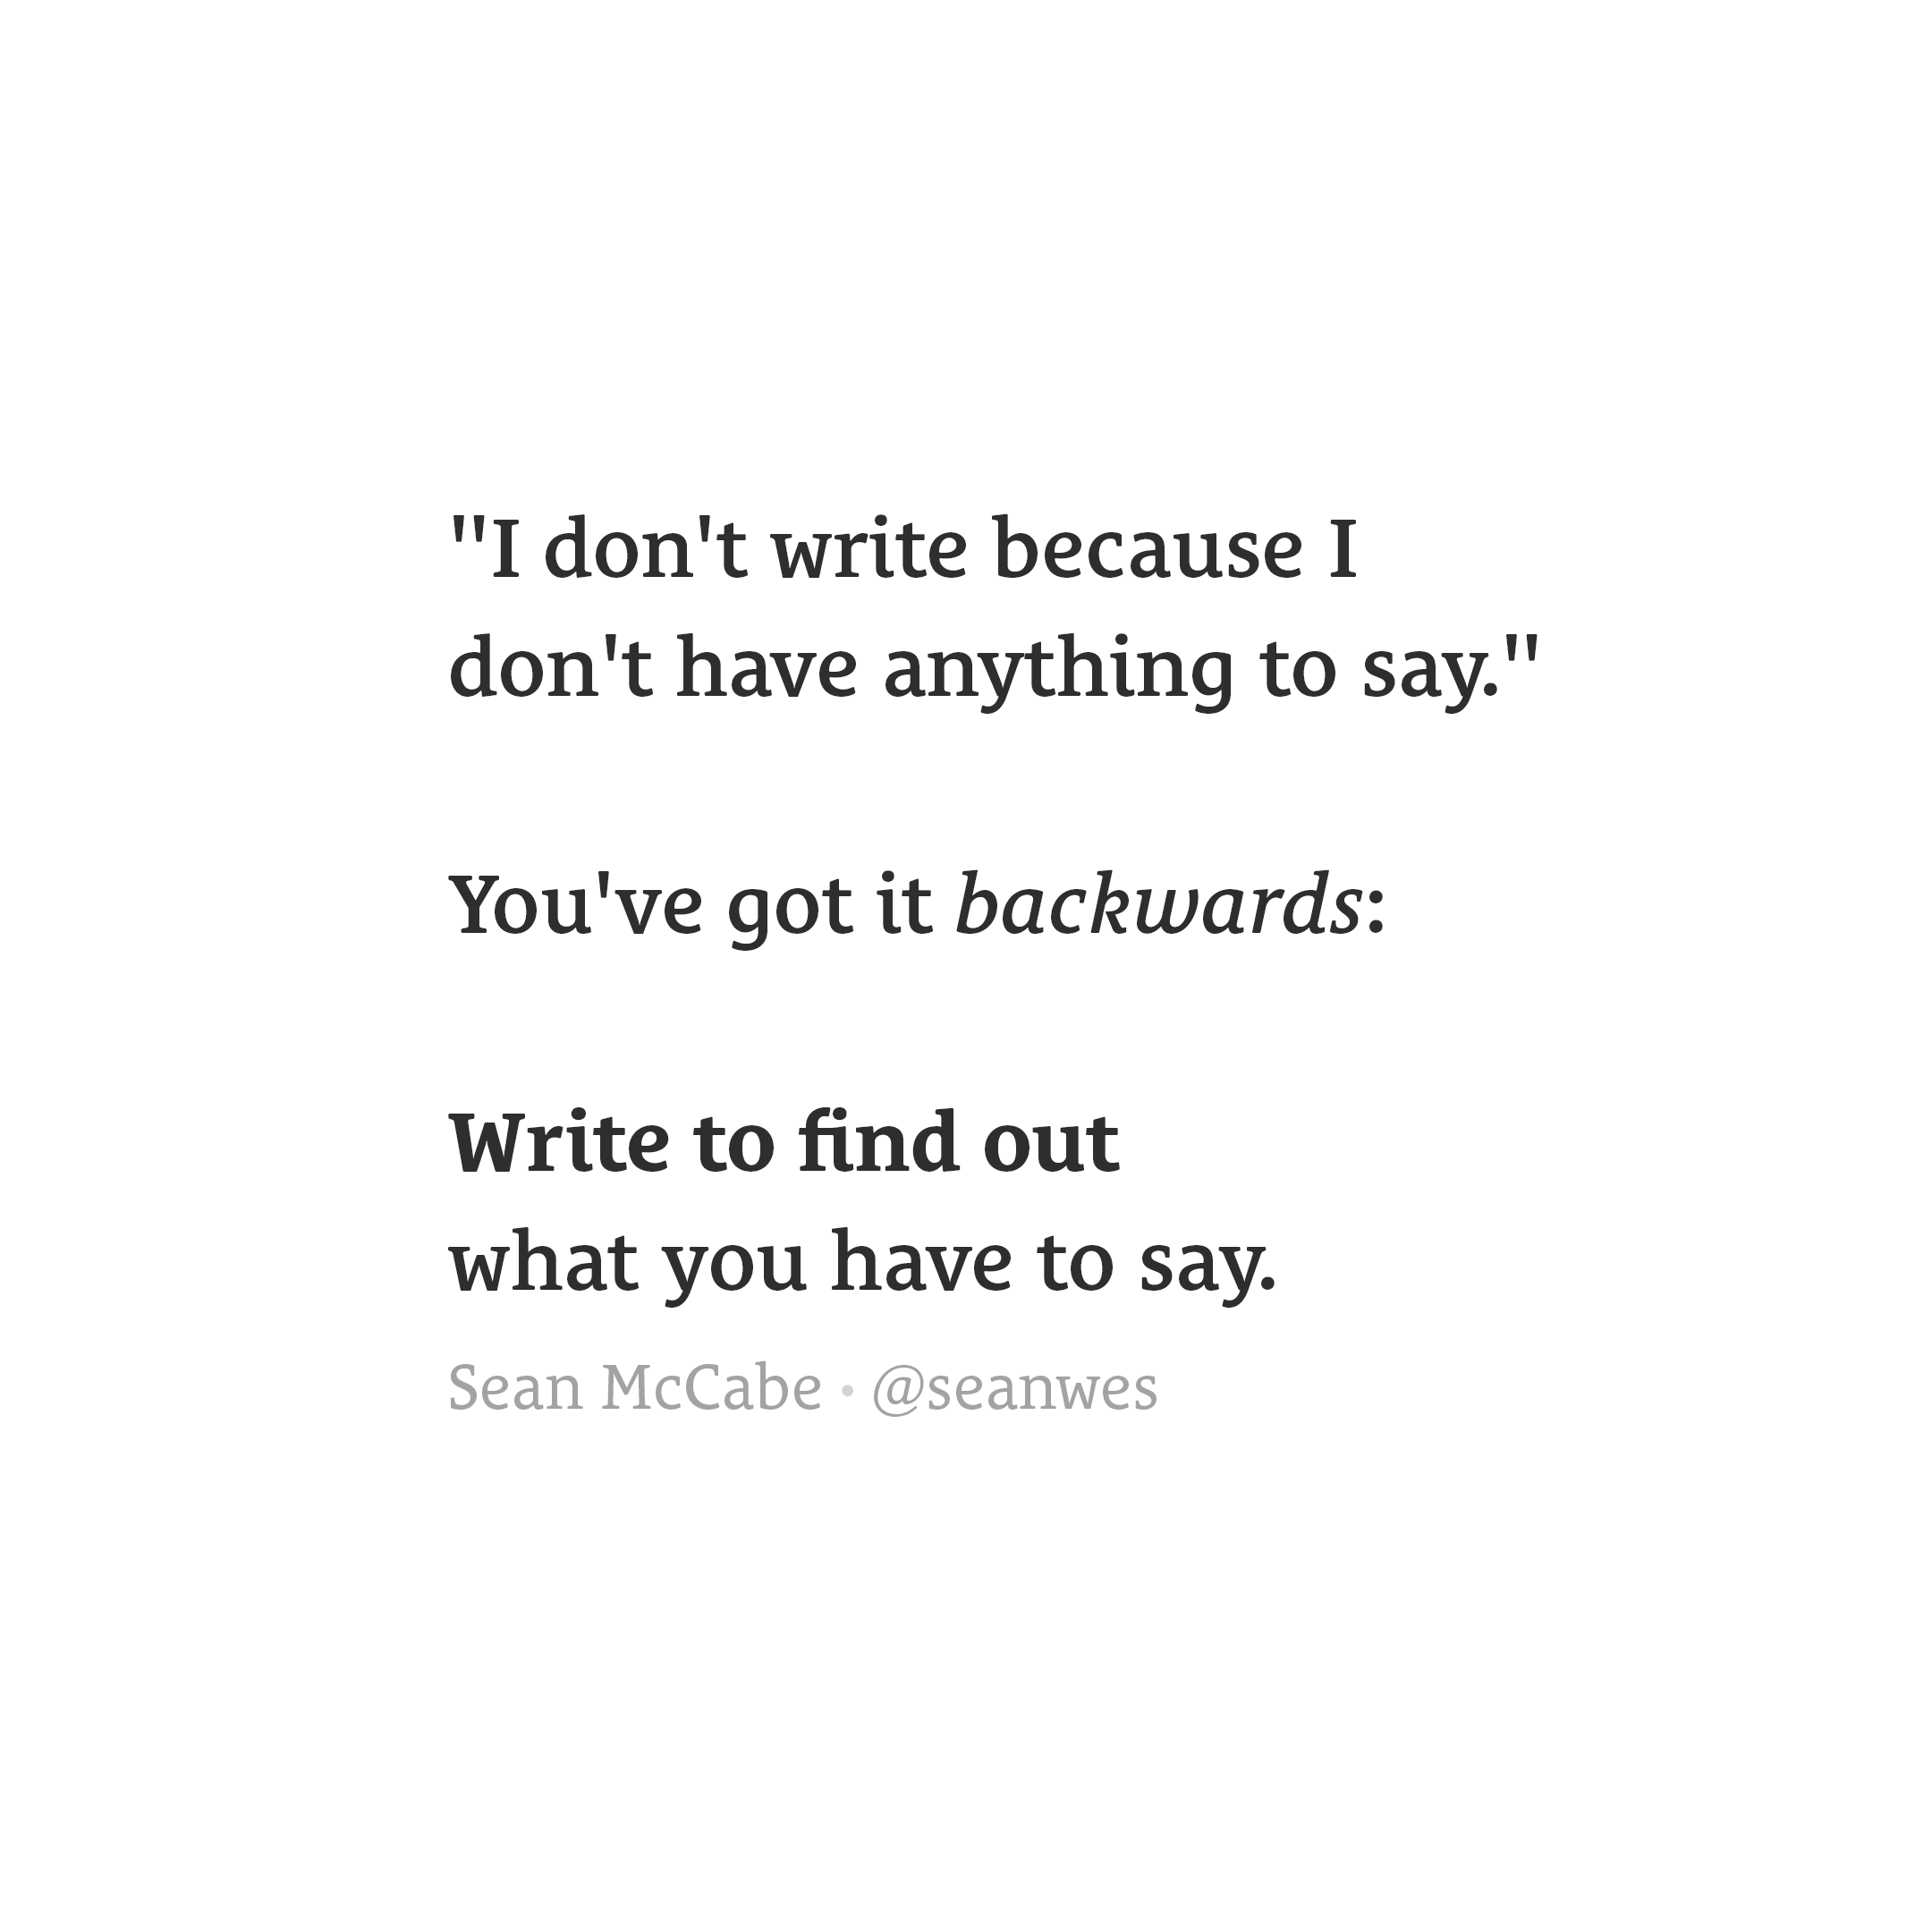 Write to find out what you have to say.